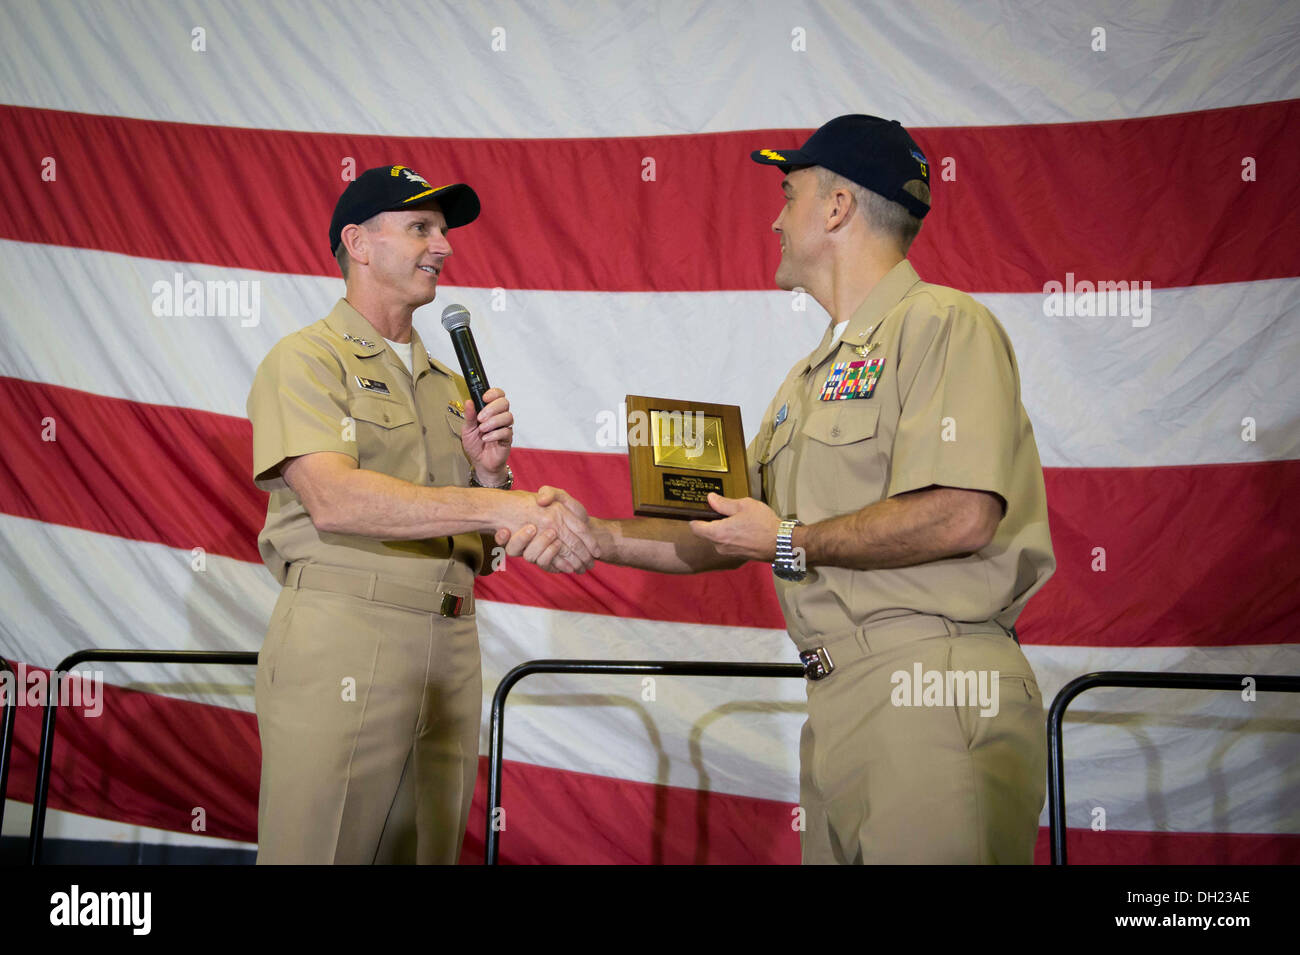 NORFOLK (Oct. 23, 2013) Chief of Naval Operations (CNO) Adm. Jonathan Greenert gives a plaque to Capt. Andrew Loiselle, commanding officer of the aircraft carrier USS George H. W. Bush (CVN 77) after he and Master Chief Petty Officer of the Navy (MCPON) M - Stock Image